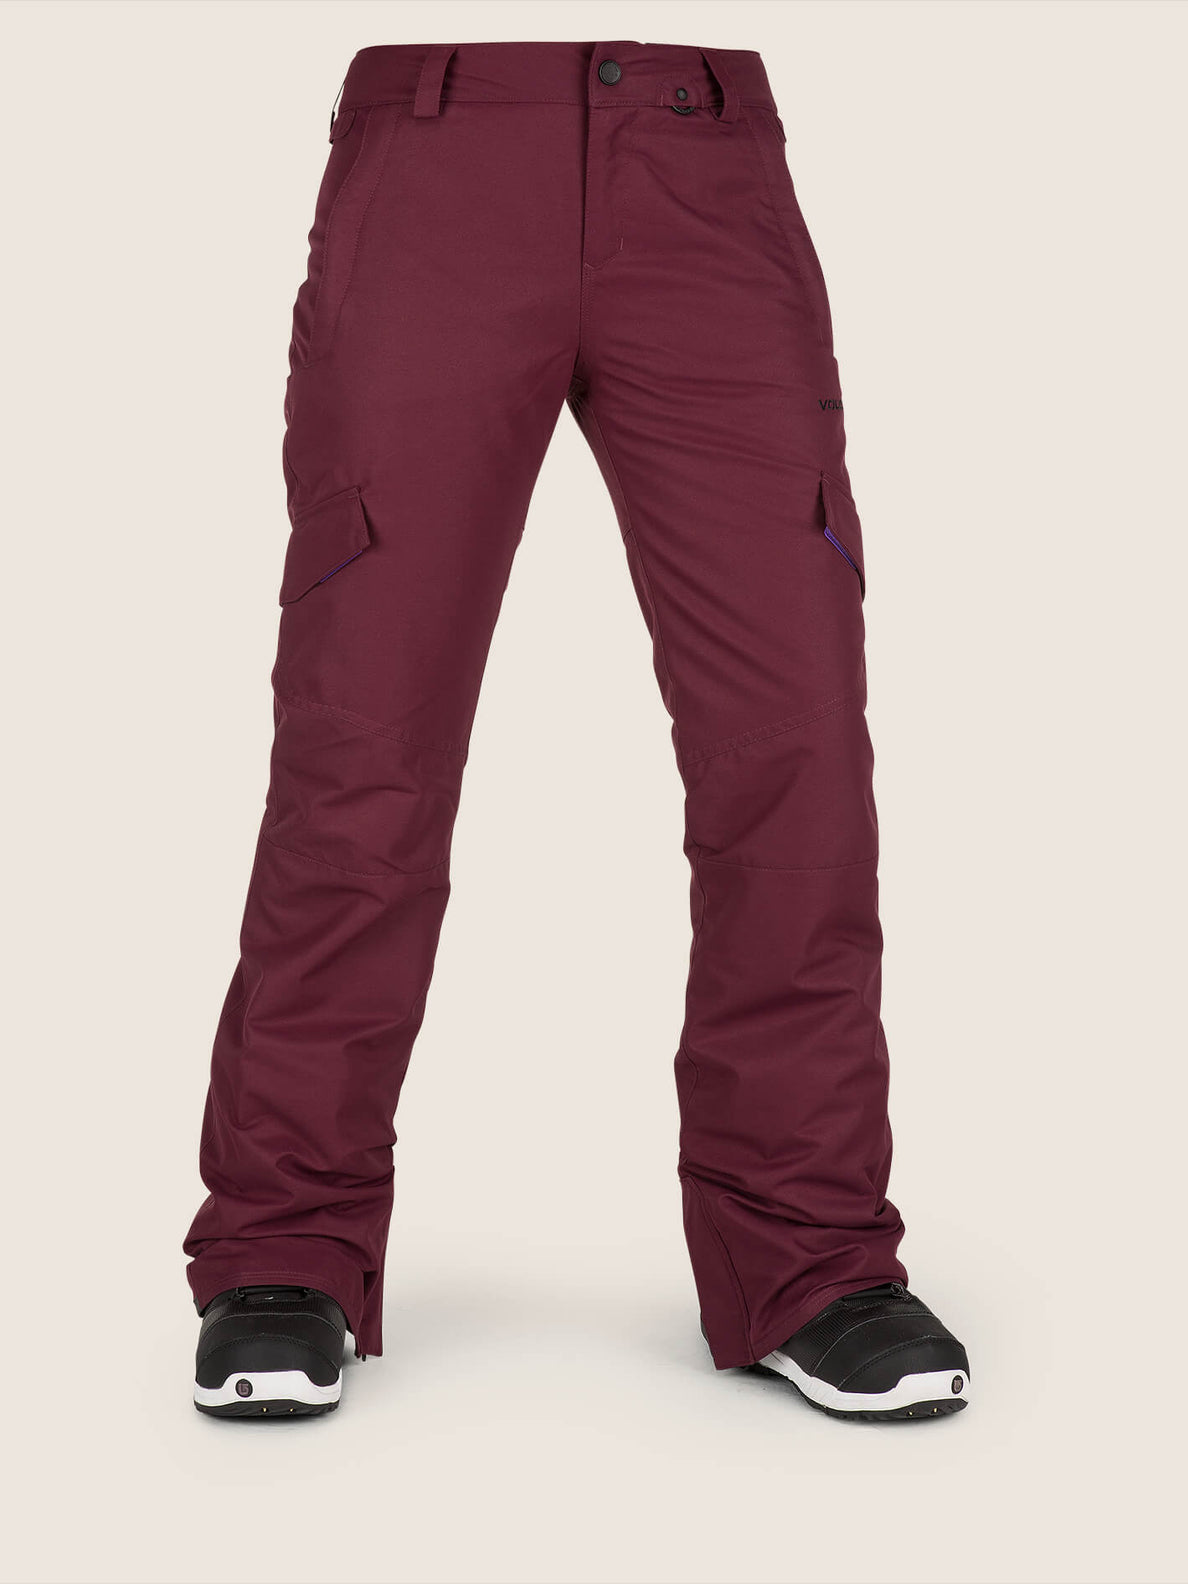 Bridger Insulated Pant In Merlot, Front View